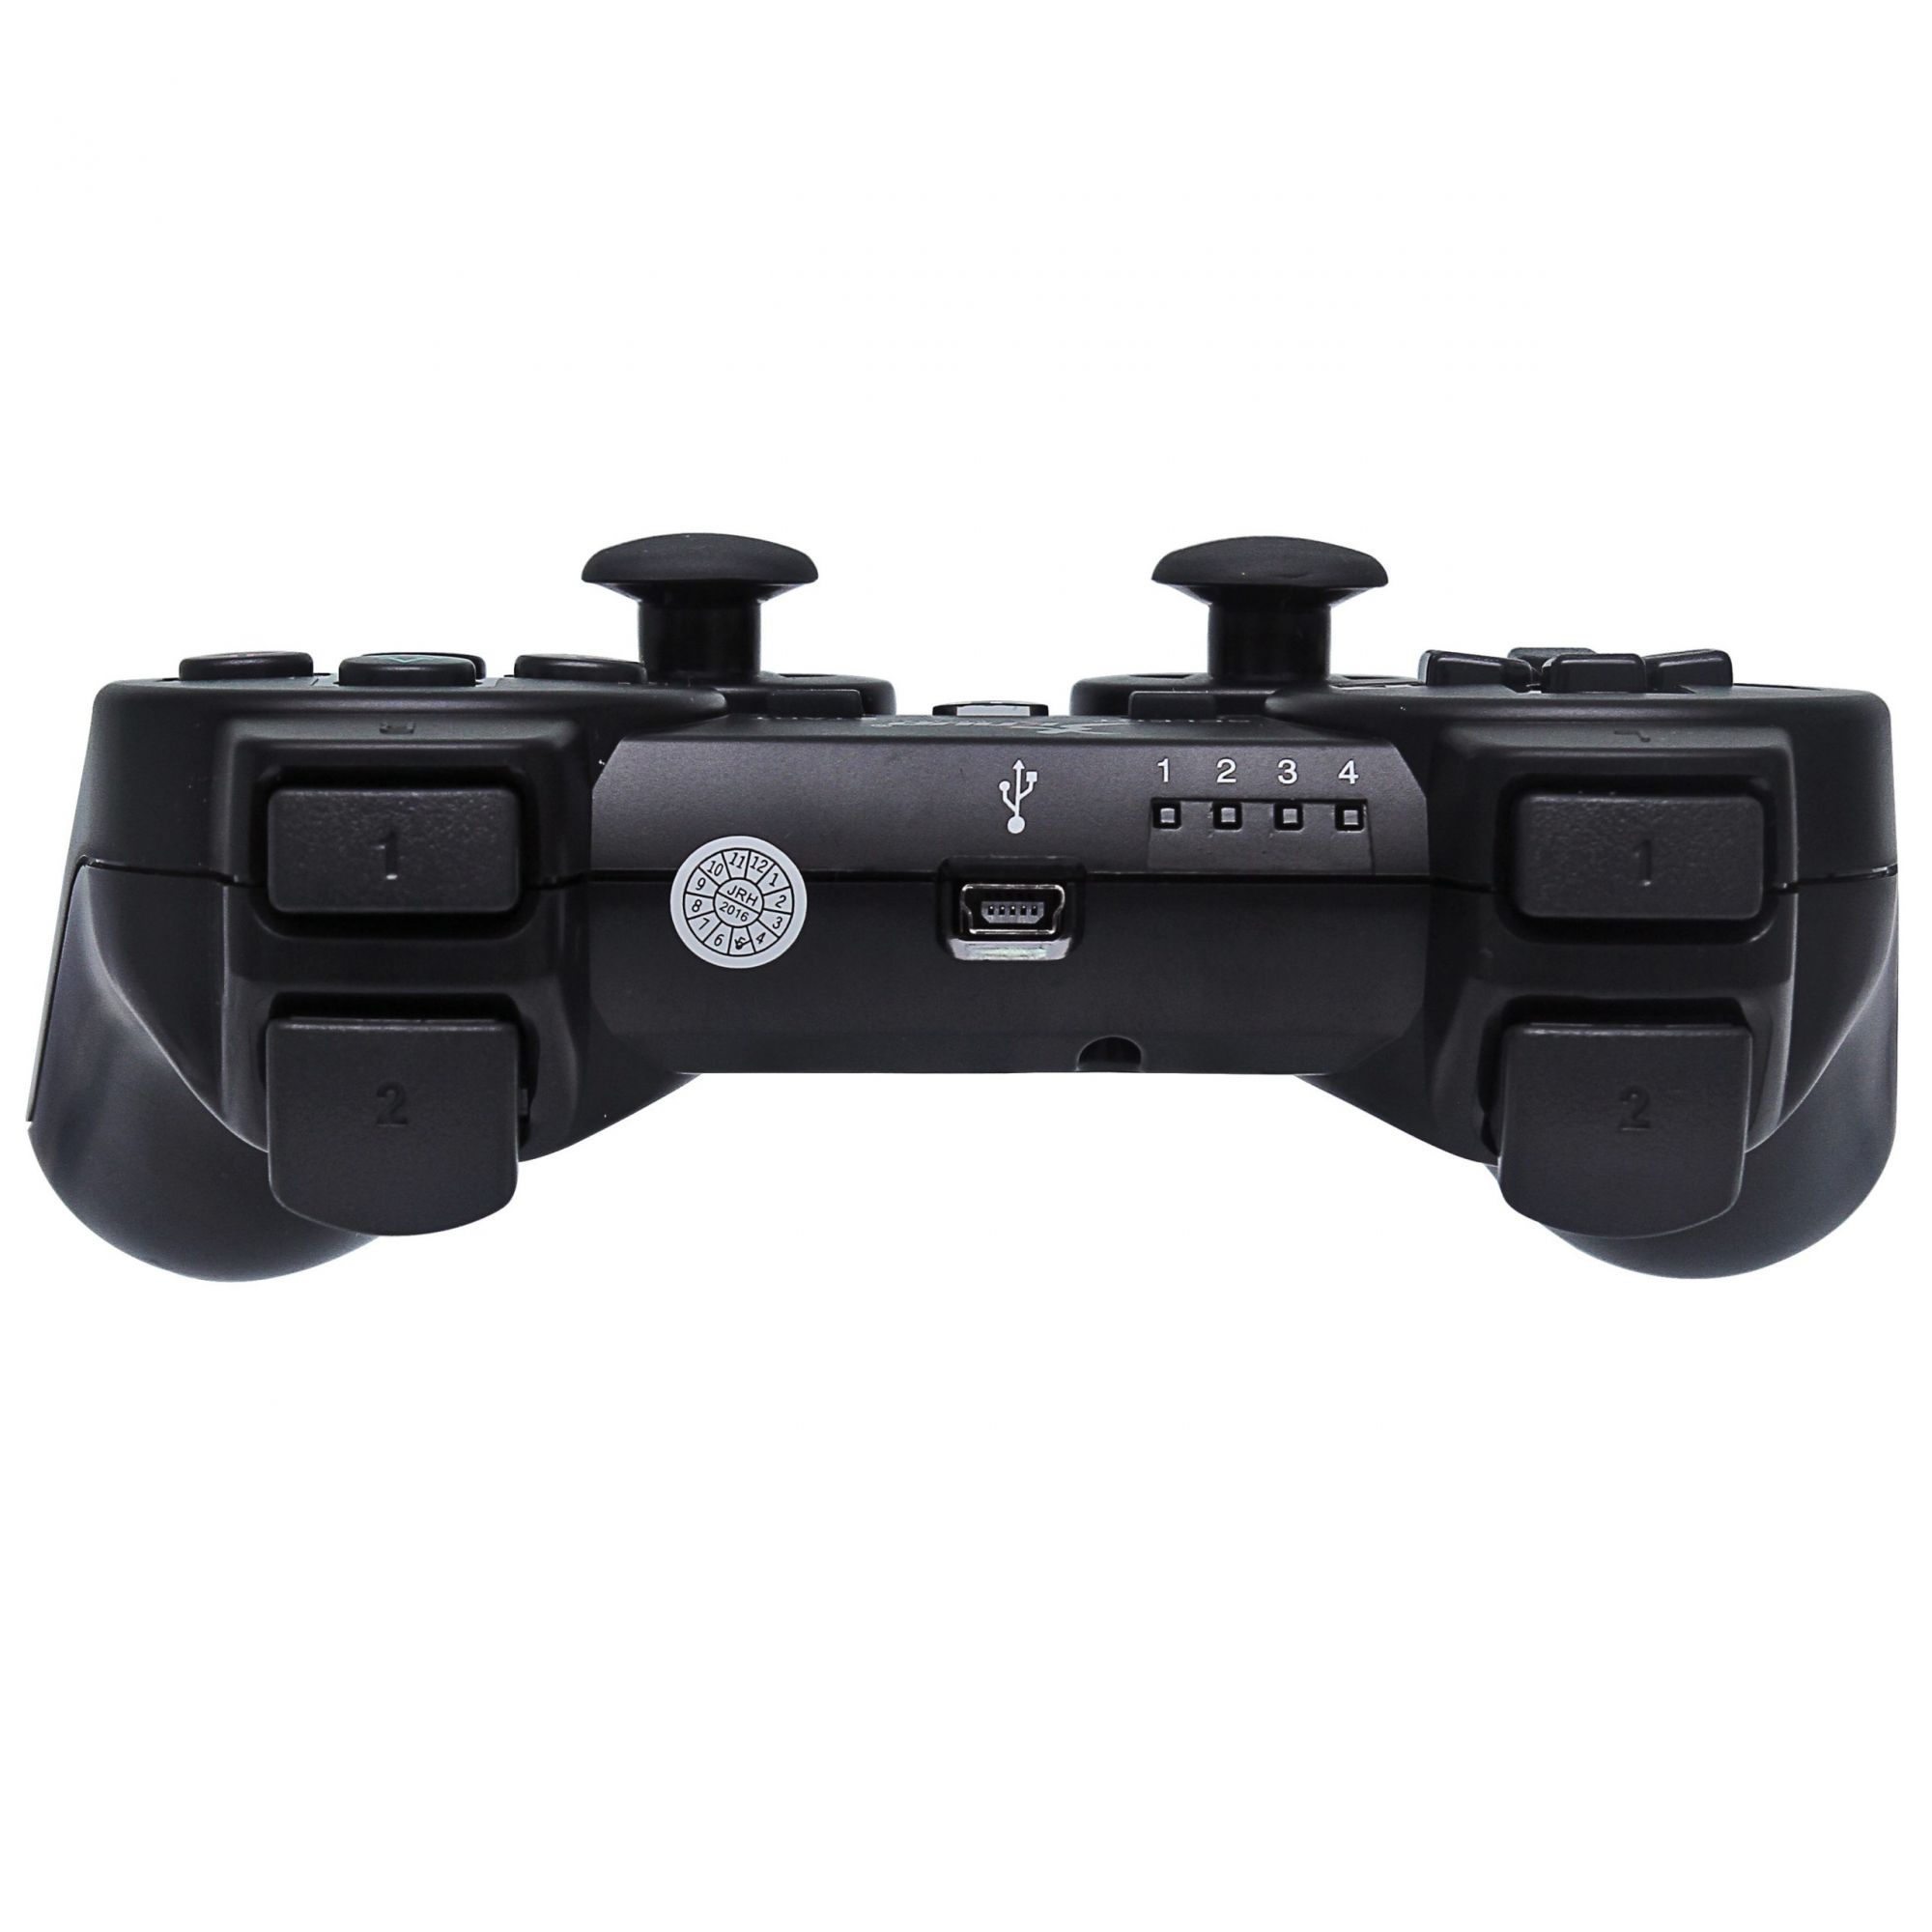 Controle Ps3 Knup Wireless Playstation 3 sem fio Kp-4021